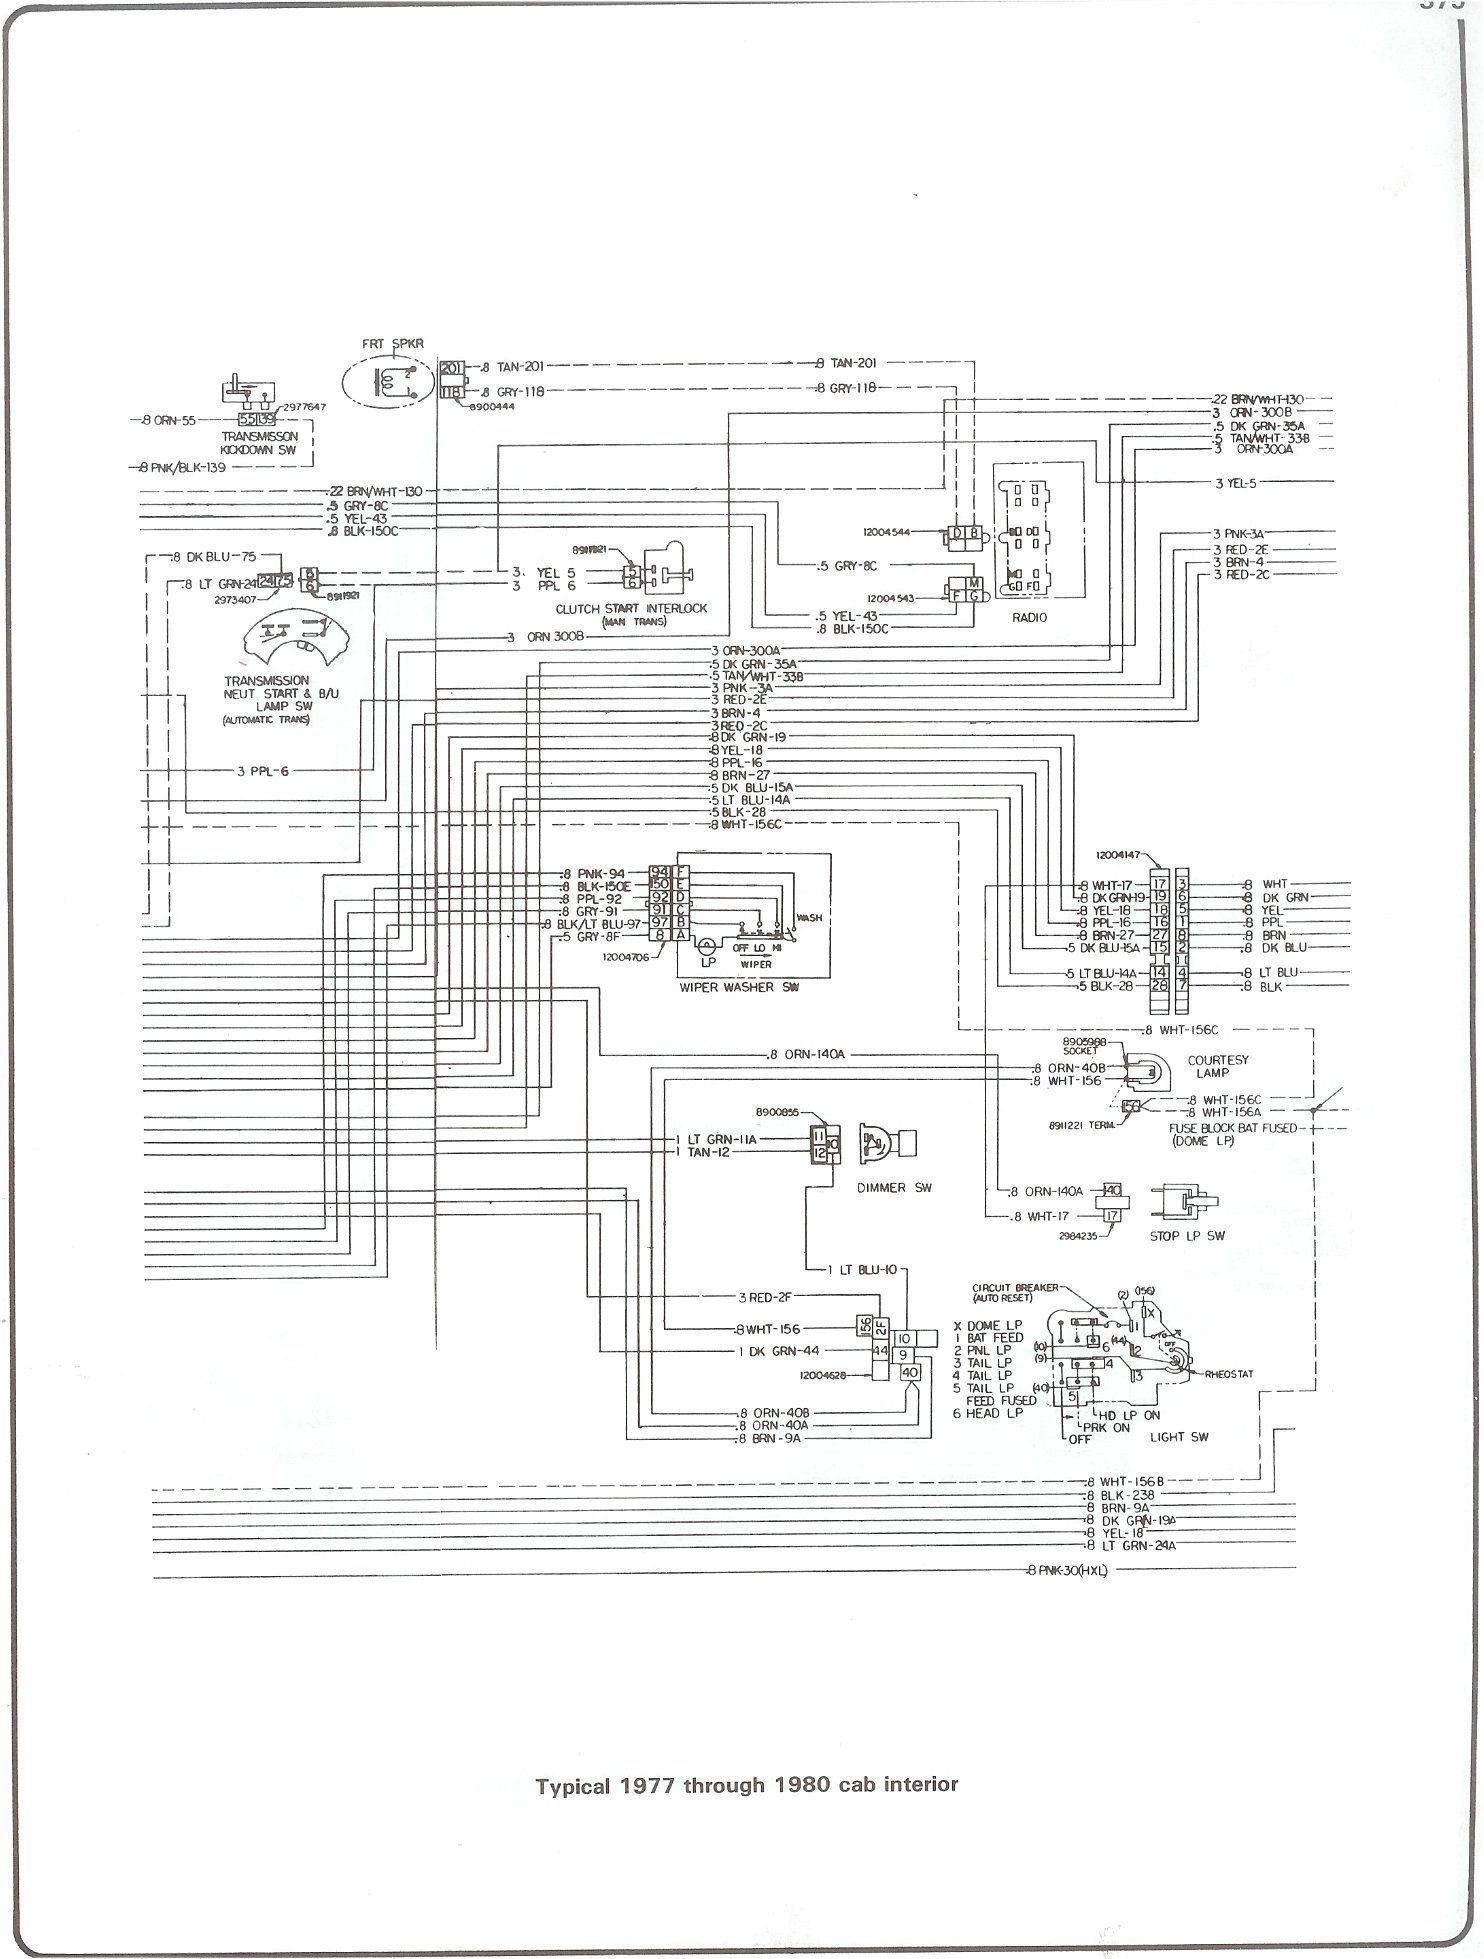 73 Chevy Wiring Diagram Auto Electrical Isuzu 4hk1 Engine Wire Ignition 40 Complete